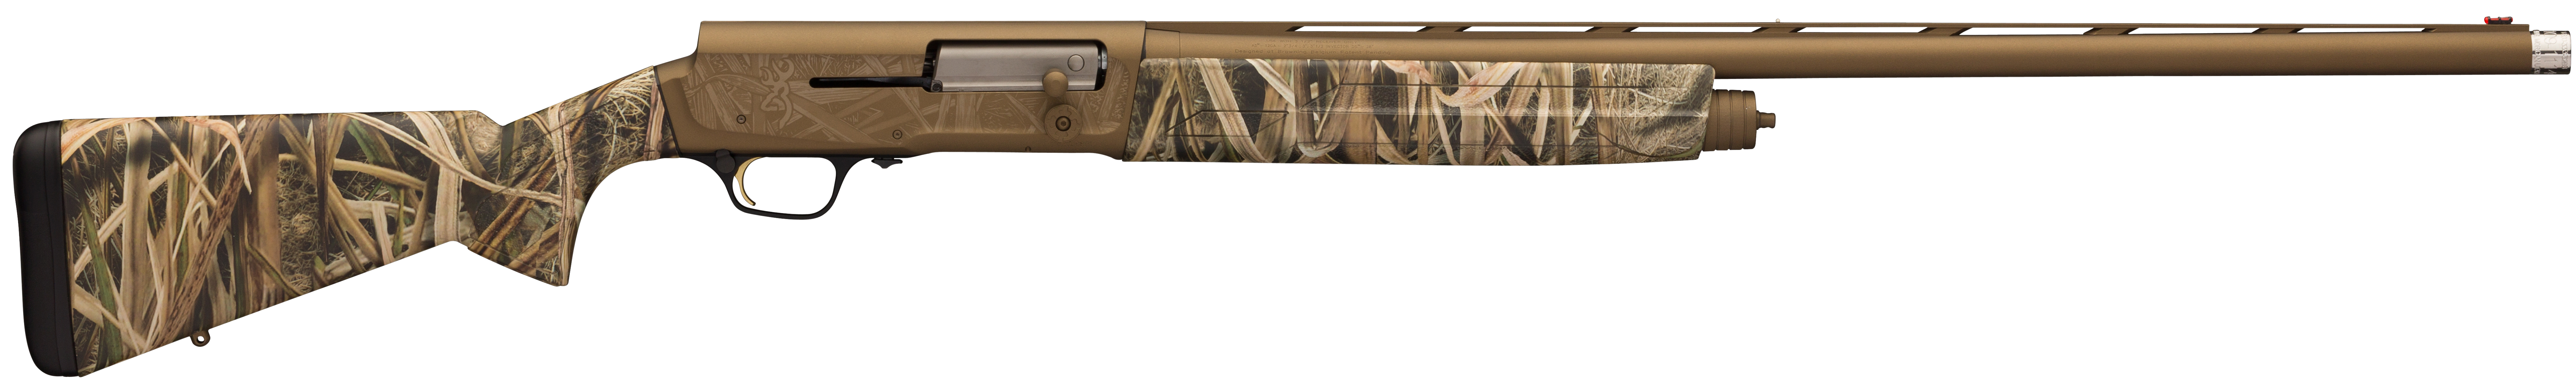 Browning A5 Wicked Wing Semi-Auto Shotgun 3'' 12 Gauge 26'' Burnt Bronze Cerakote - Synthetic - Mossy Oak Shadow Grass Blades